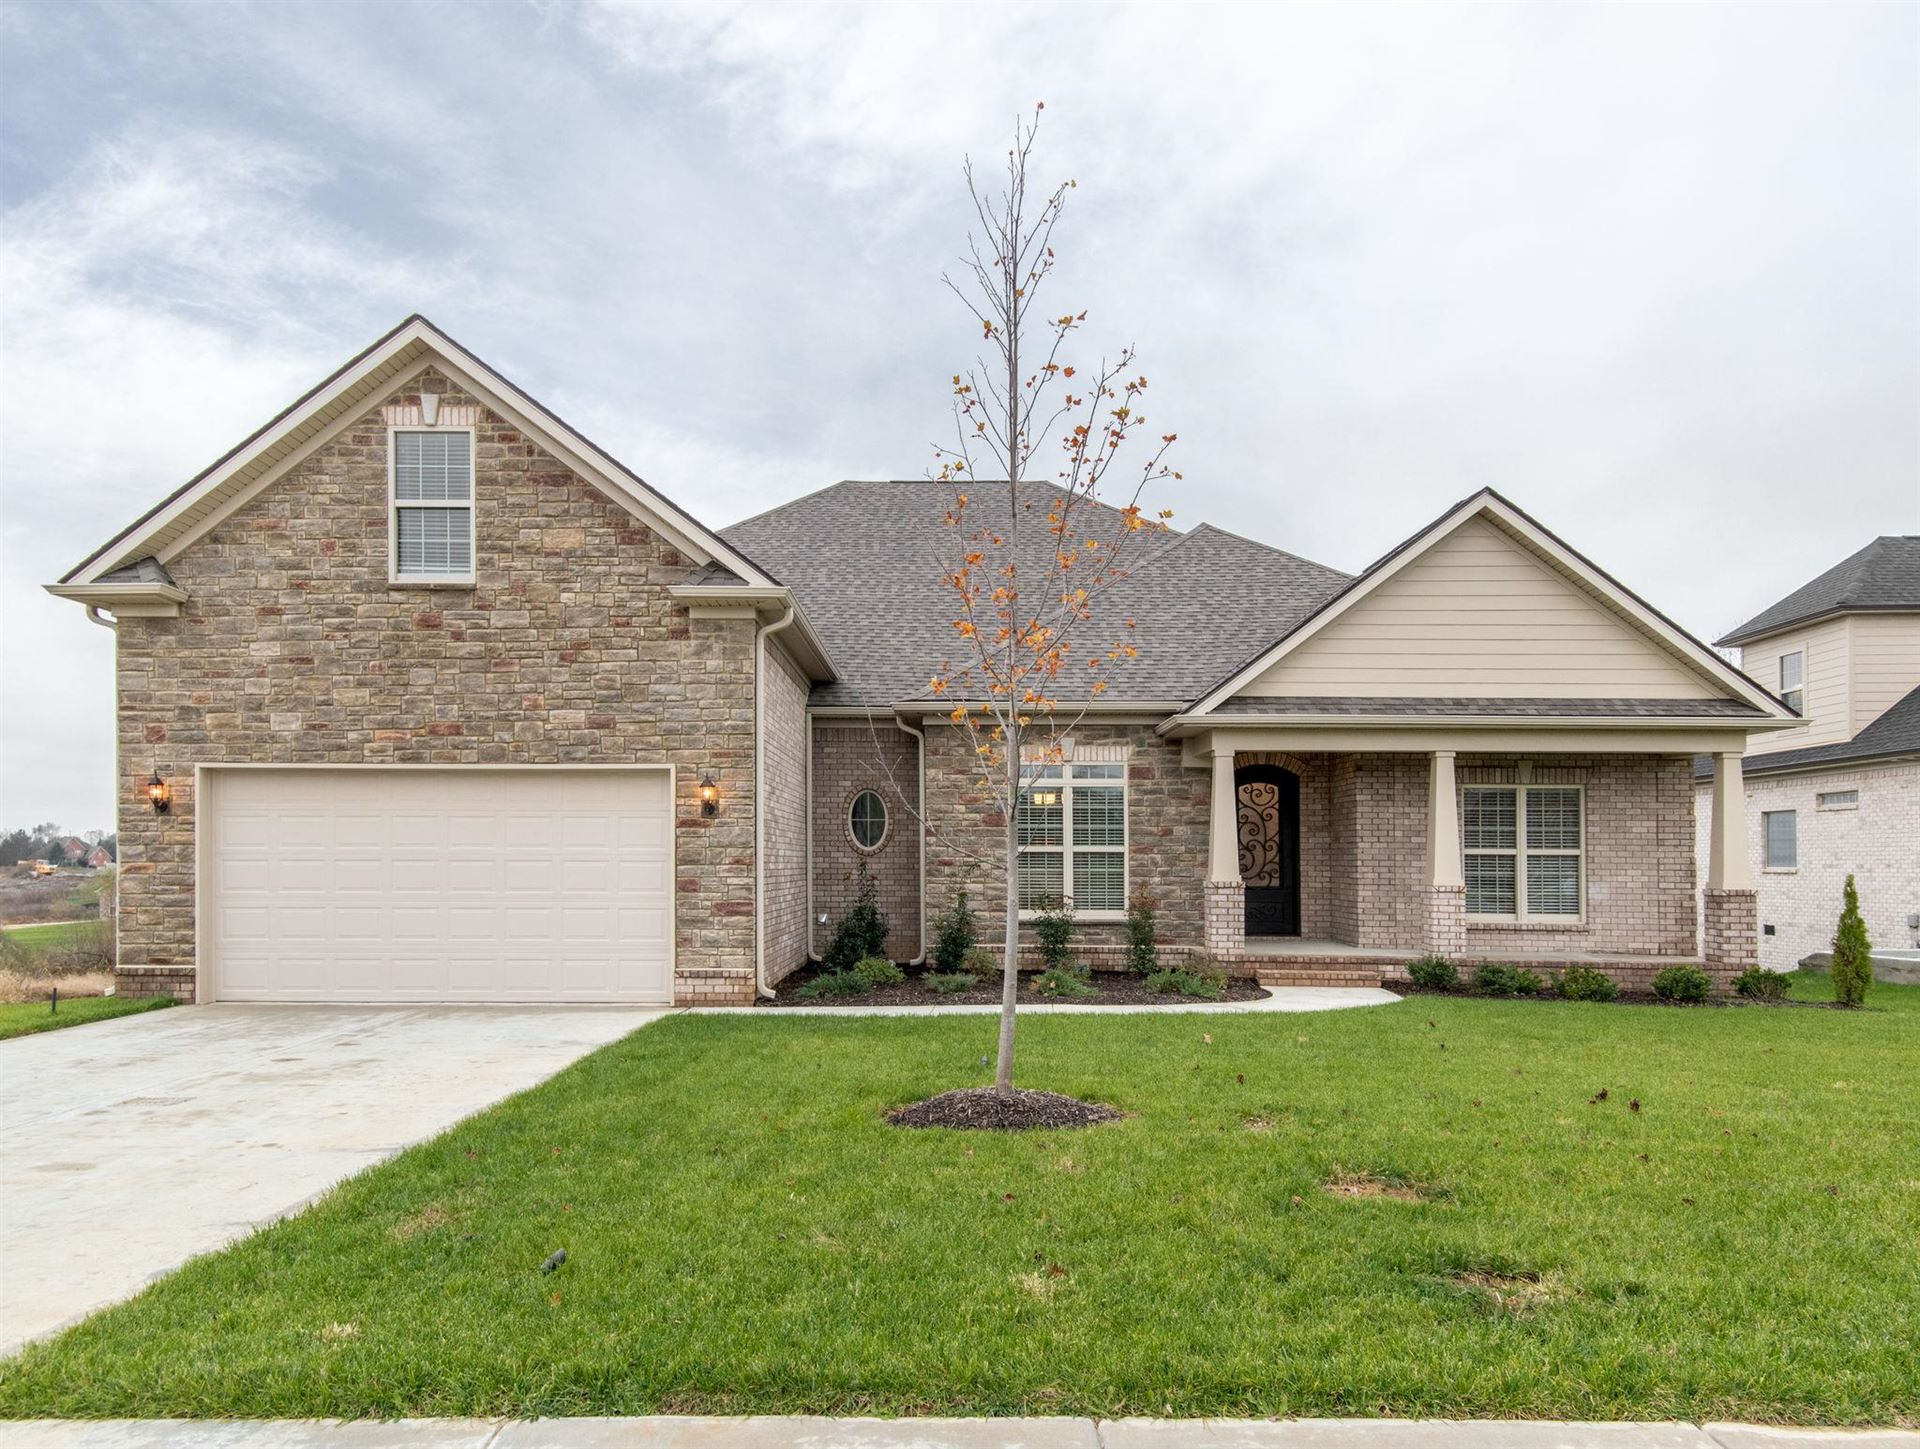 Photo for 1092 Brixworth Dr, Spring Hill, TN 37174 (MLS # 1890455)